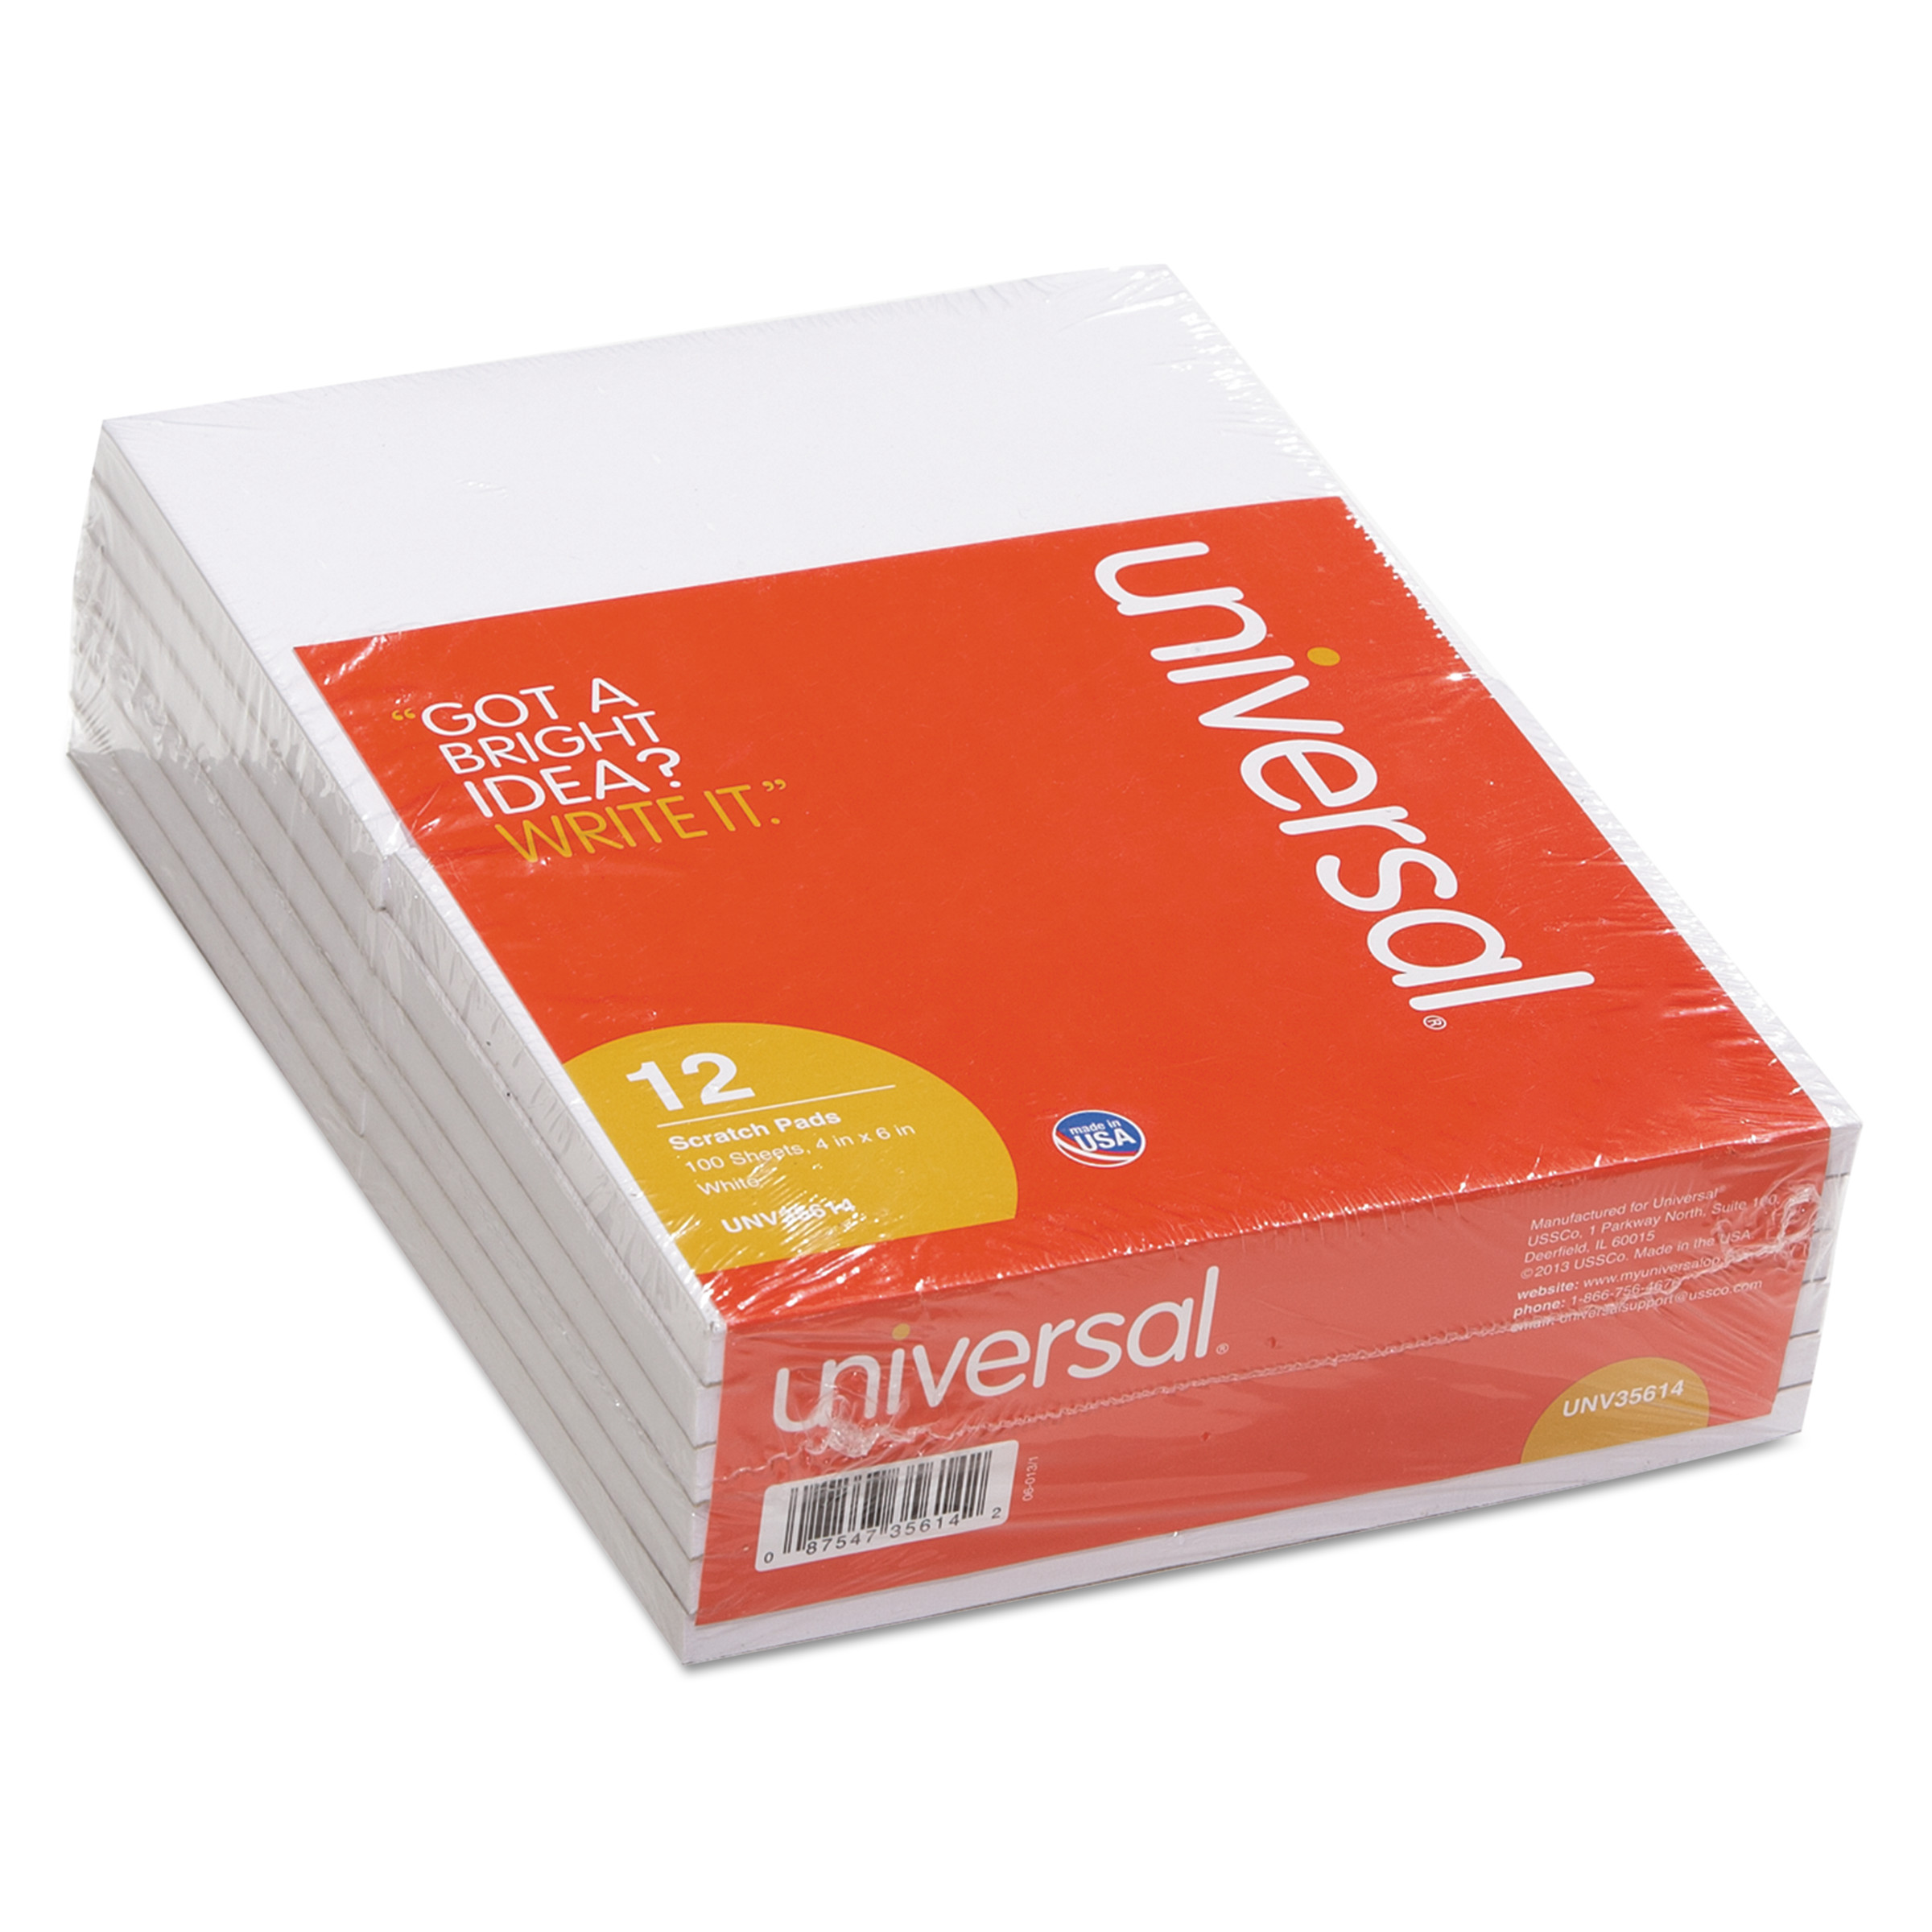 Universal Scratch Pads, Unruled, 4 x 6, White, 100 Sheet Pads, 12 pack